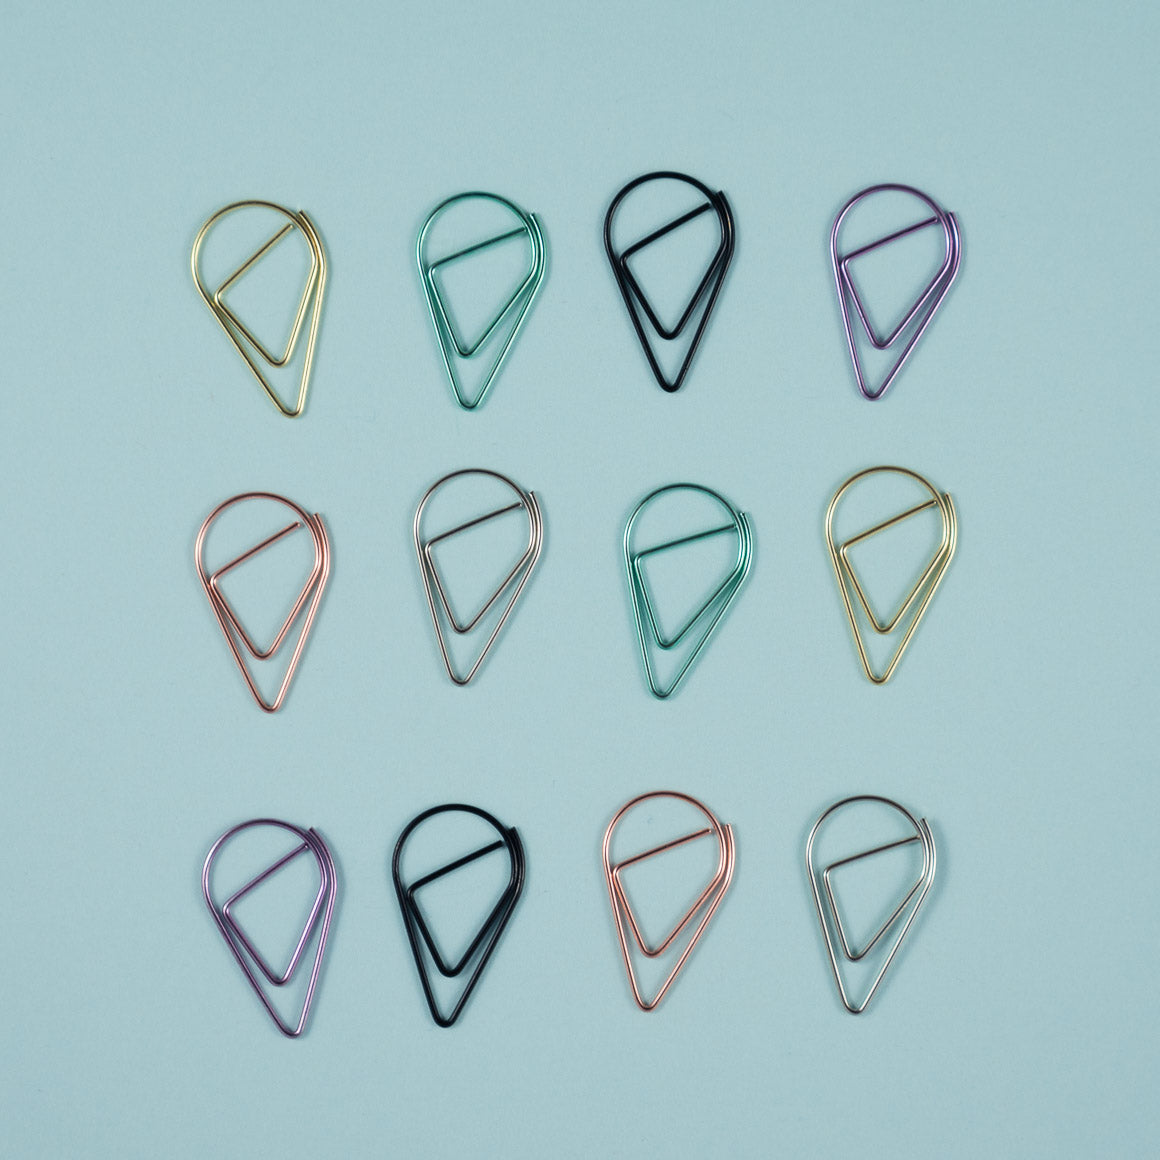 teardrop shaped paperclips